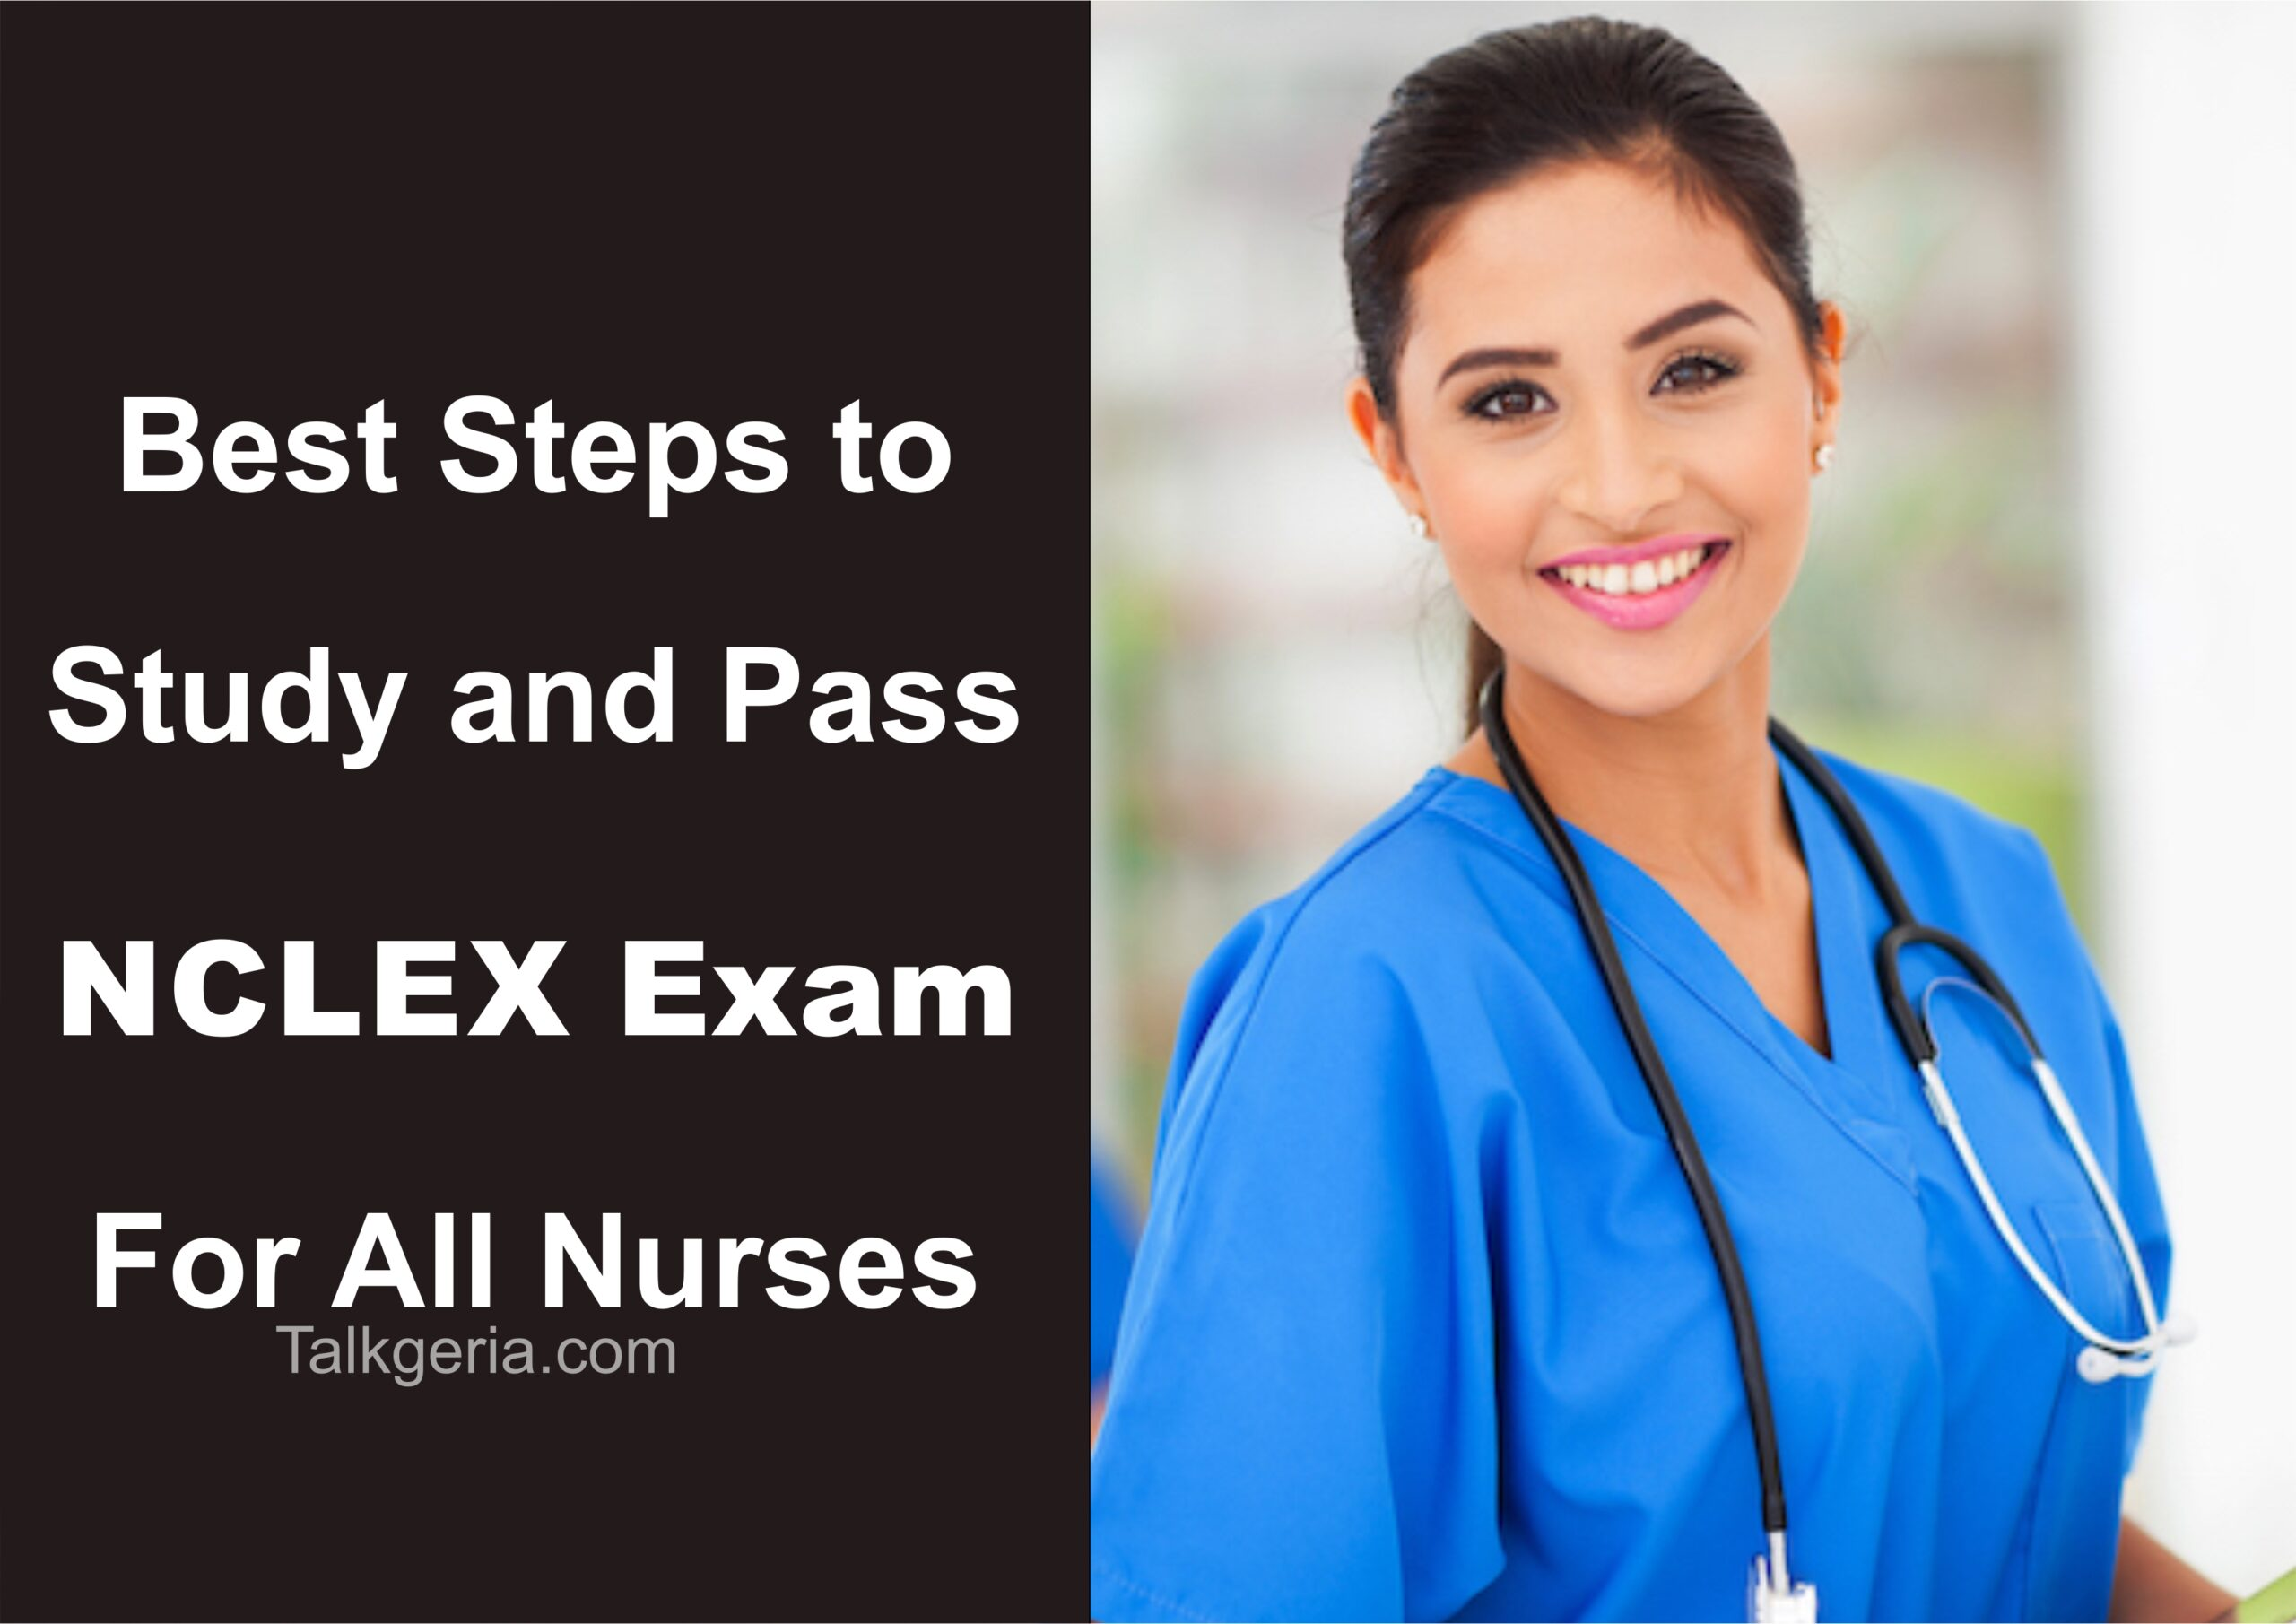 3 Best Steps to study and Pass NCLEX